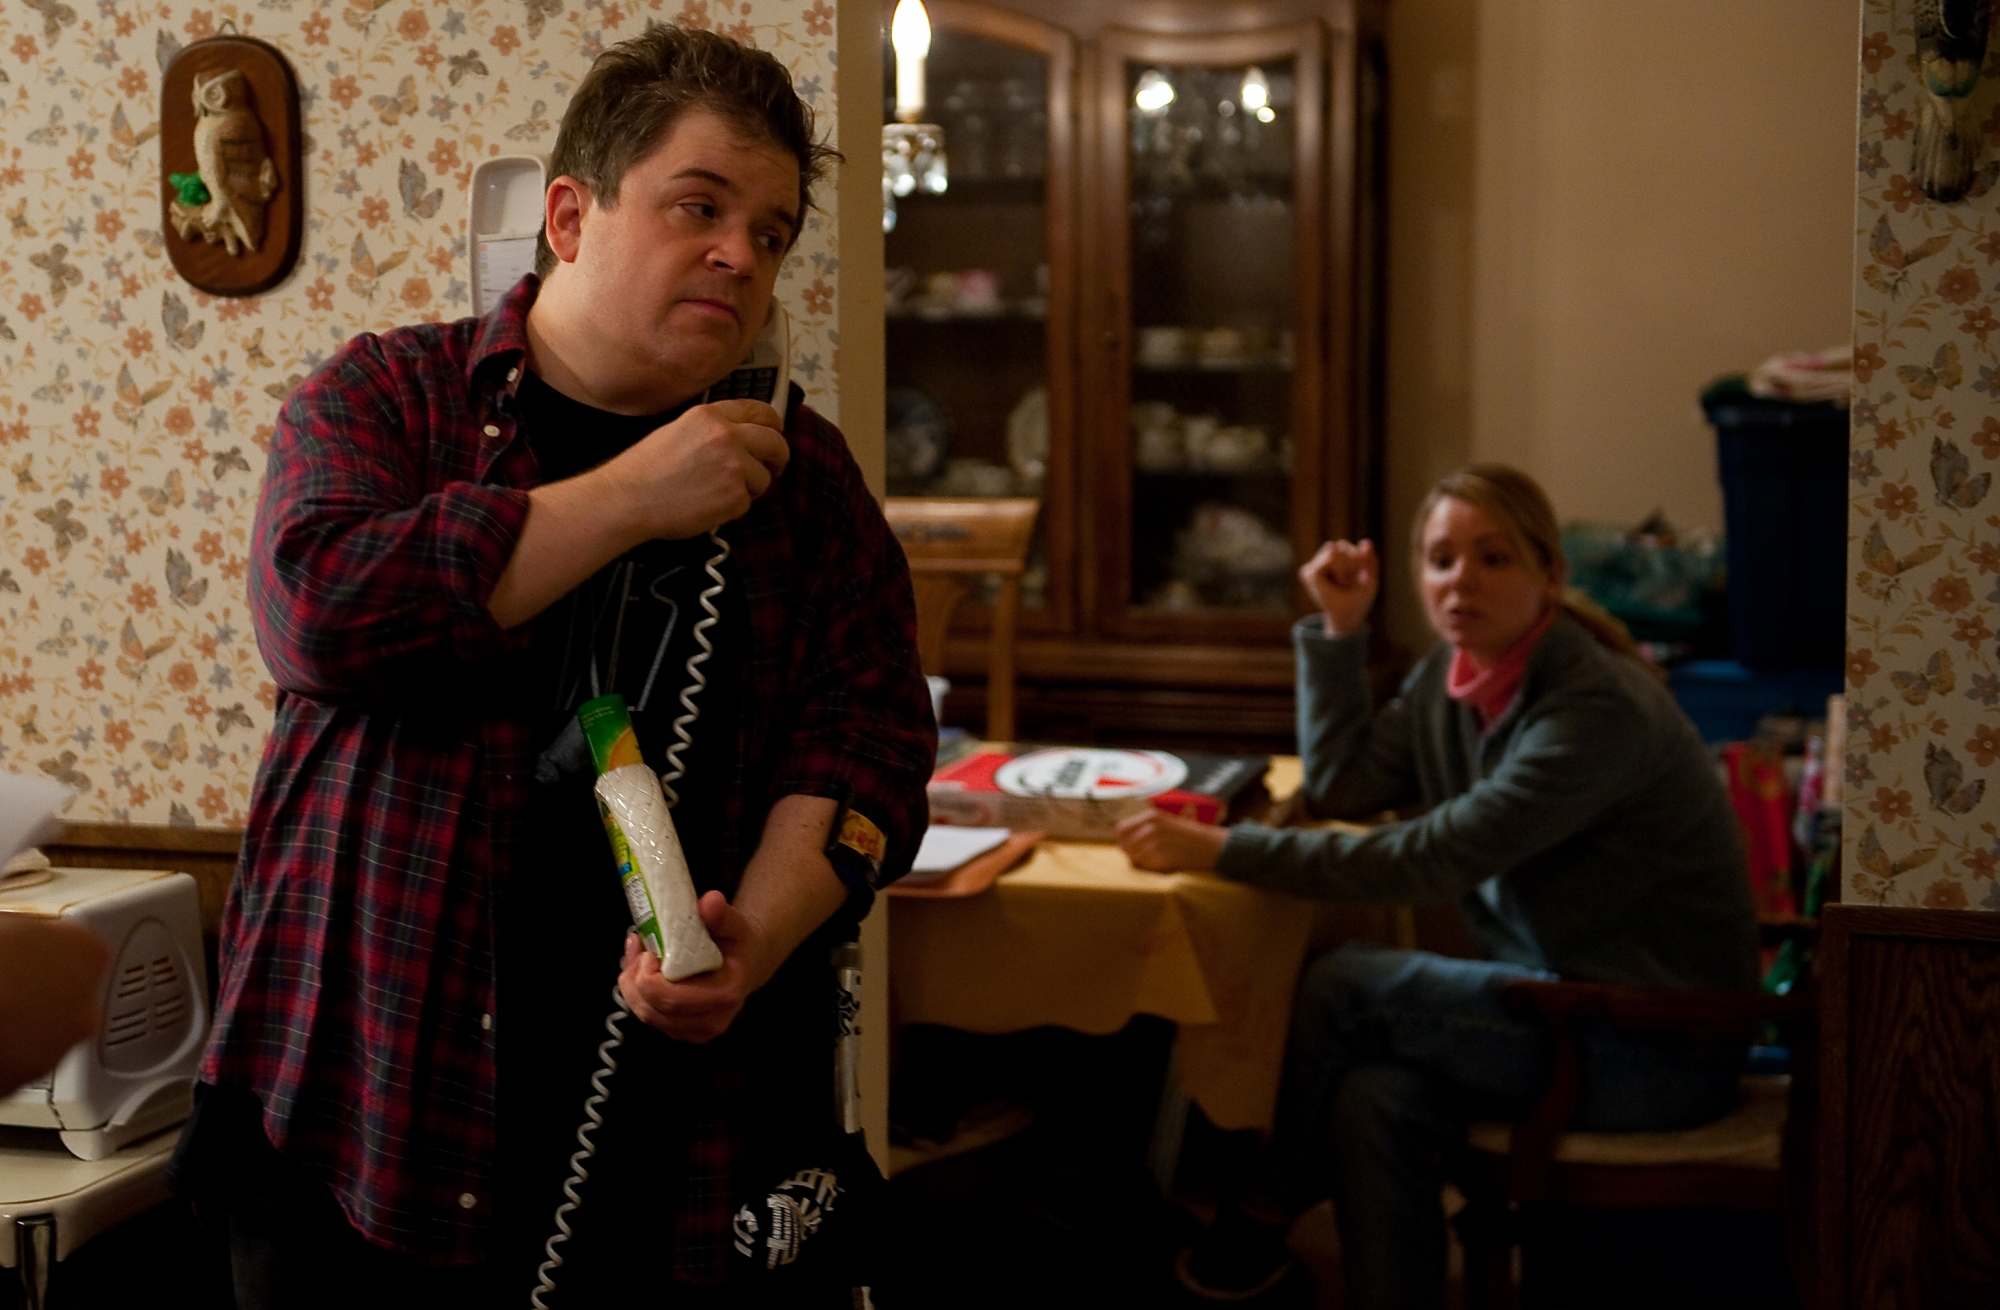 Young-Adult-Patton-Oswalt.jpg